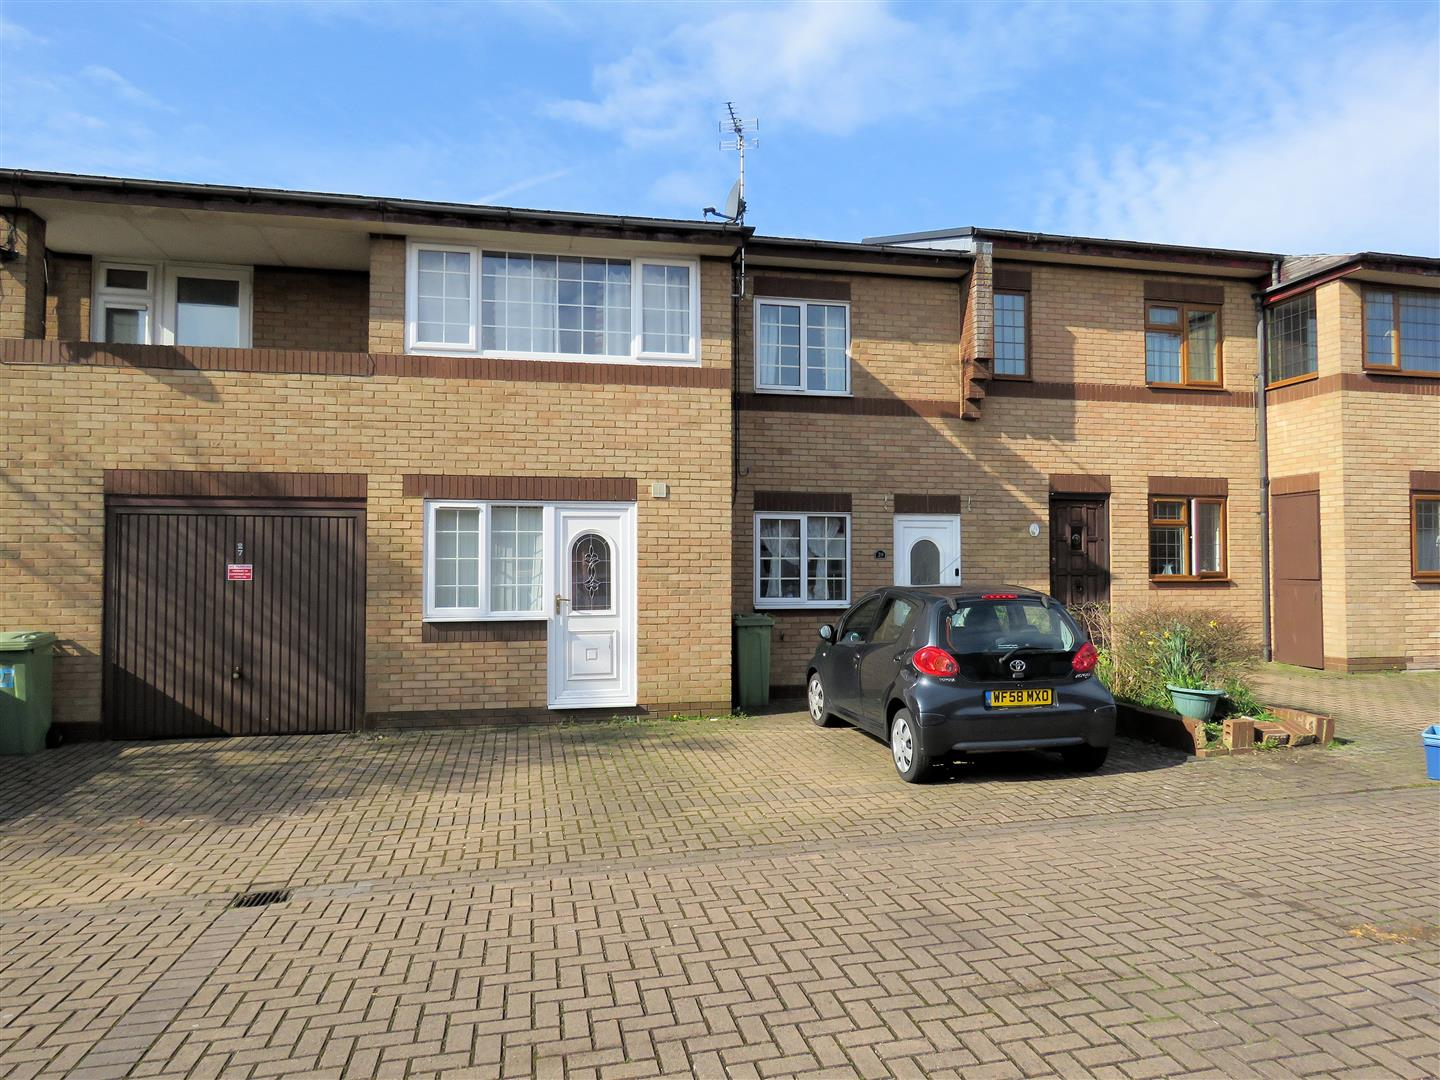 Property To Rent In Oldbrook Milton Keynes